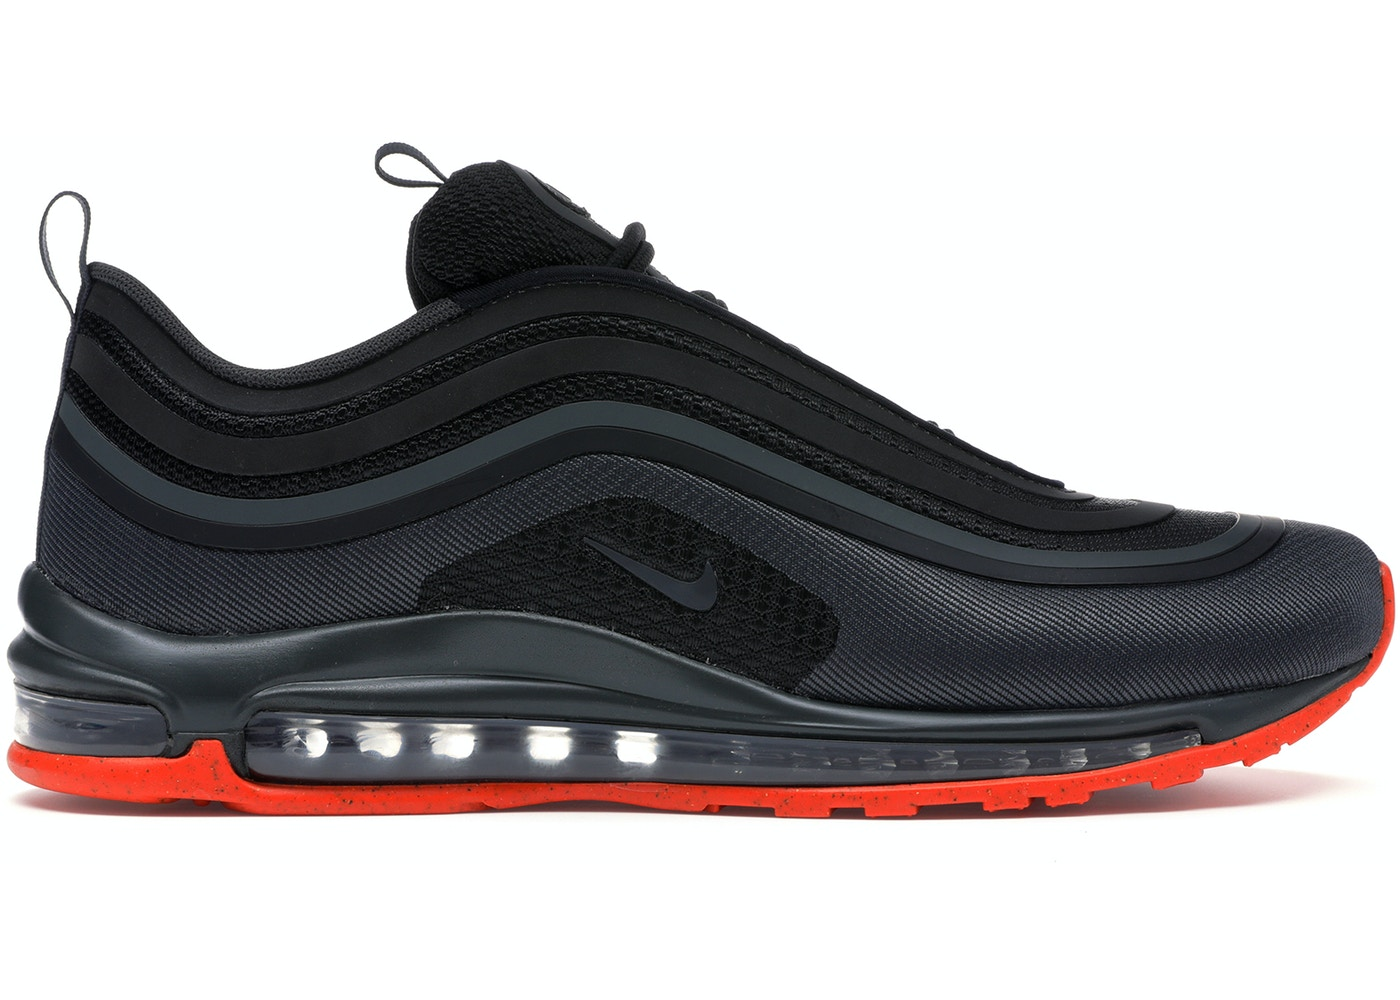 online store aed96 84c9a Air Max 97 Ultra 17 Anthracite Rush Orange - AH9943-001